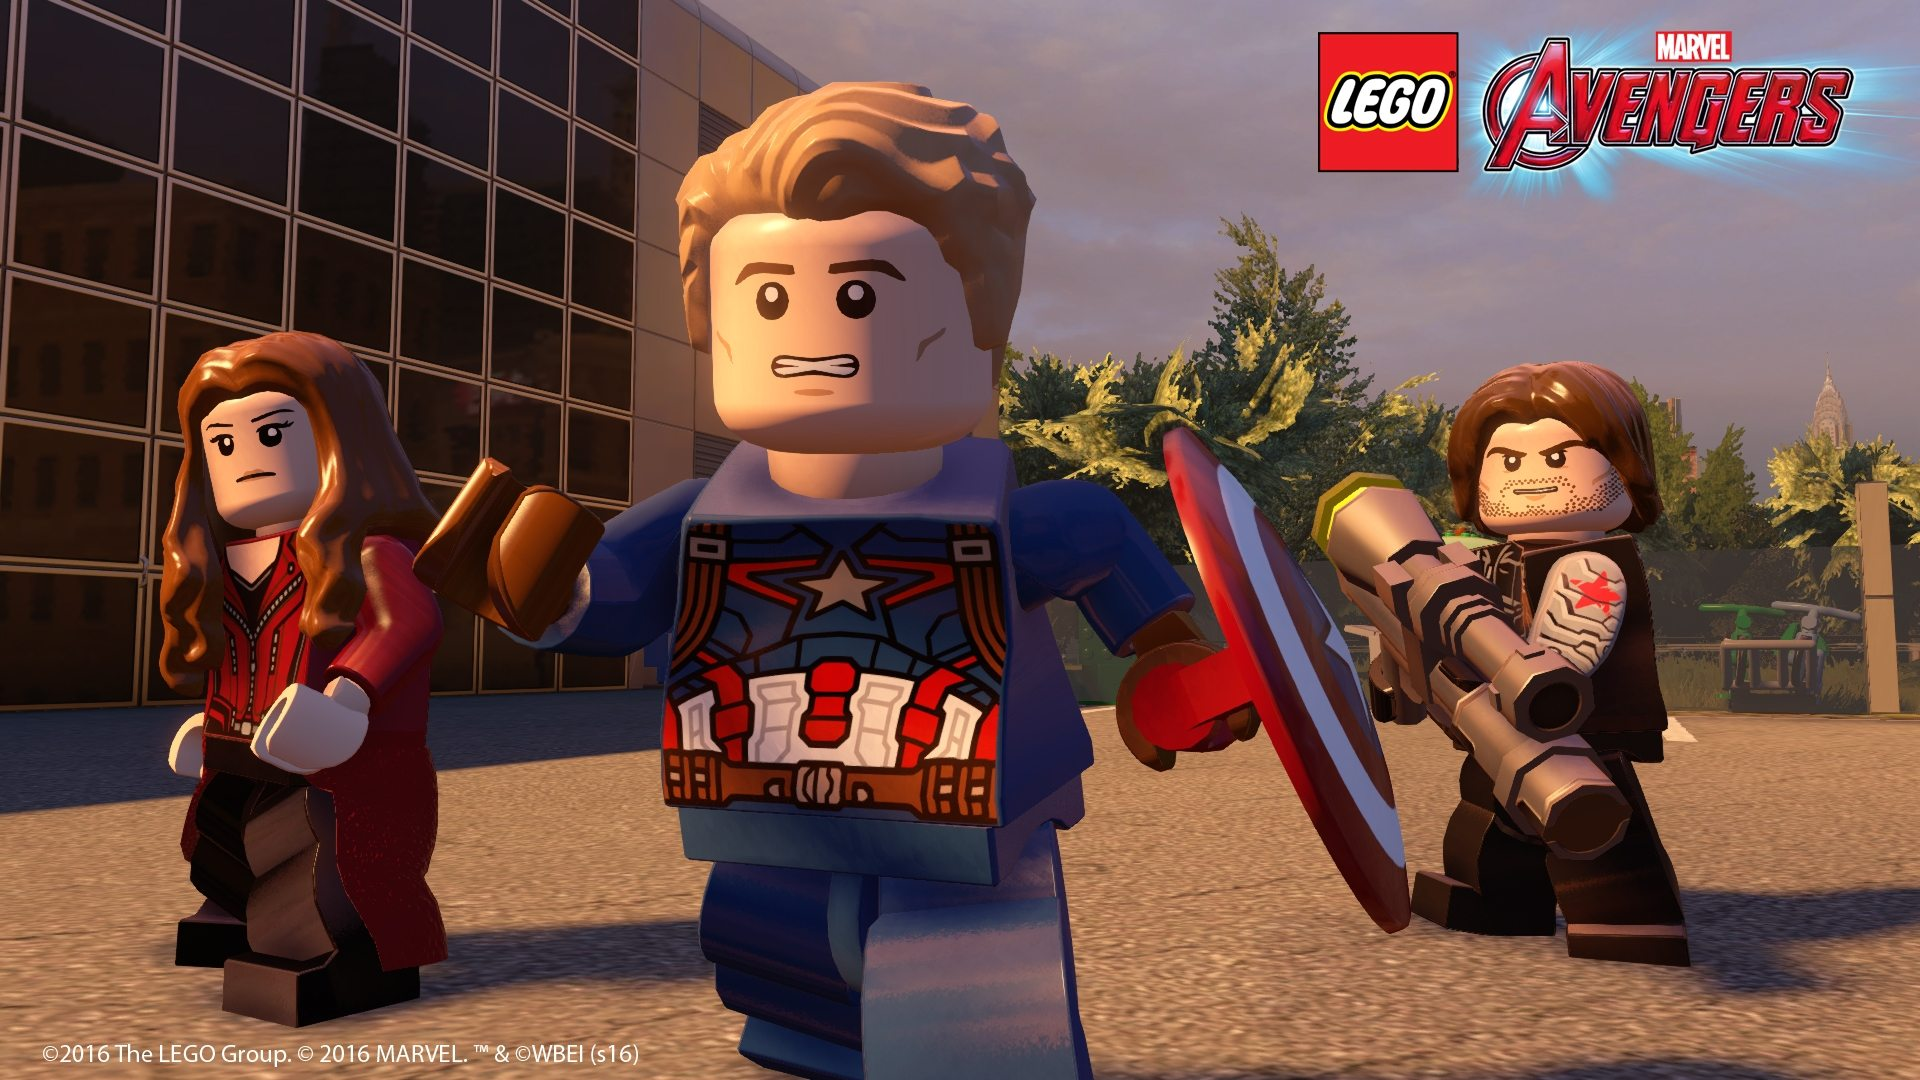 'Ant-Man' and 'Captain America: Civil War' DLC for 'LEGO Marvel's Avengers'